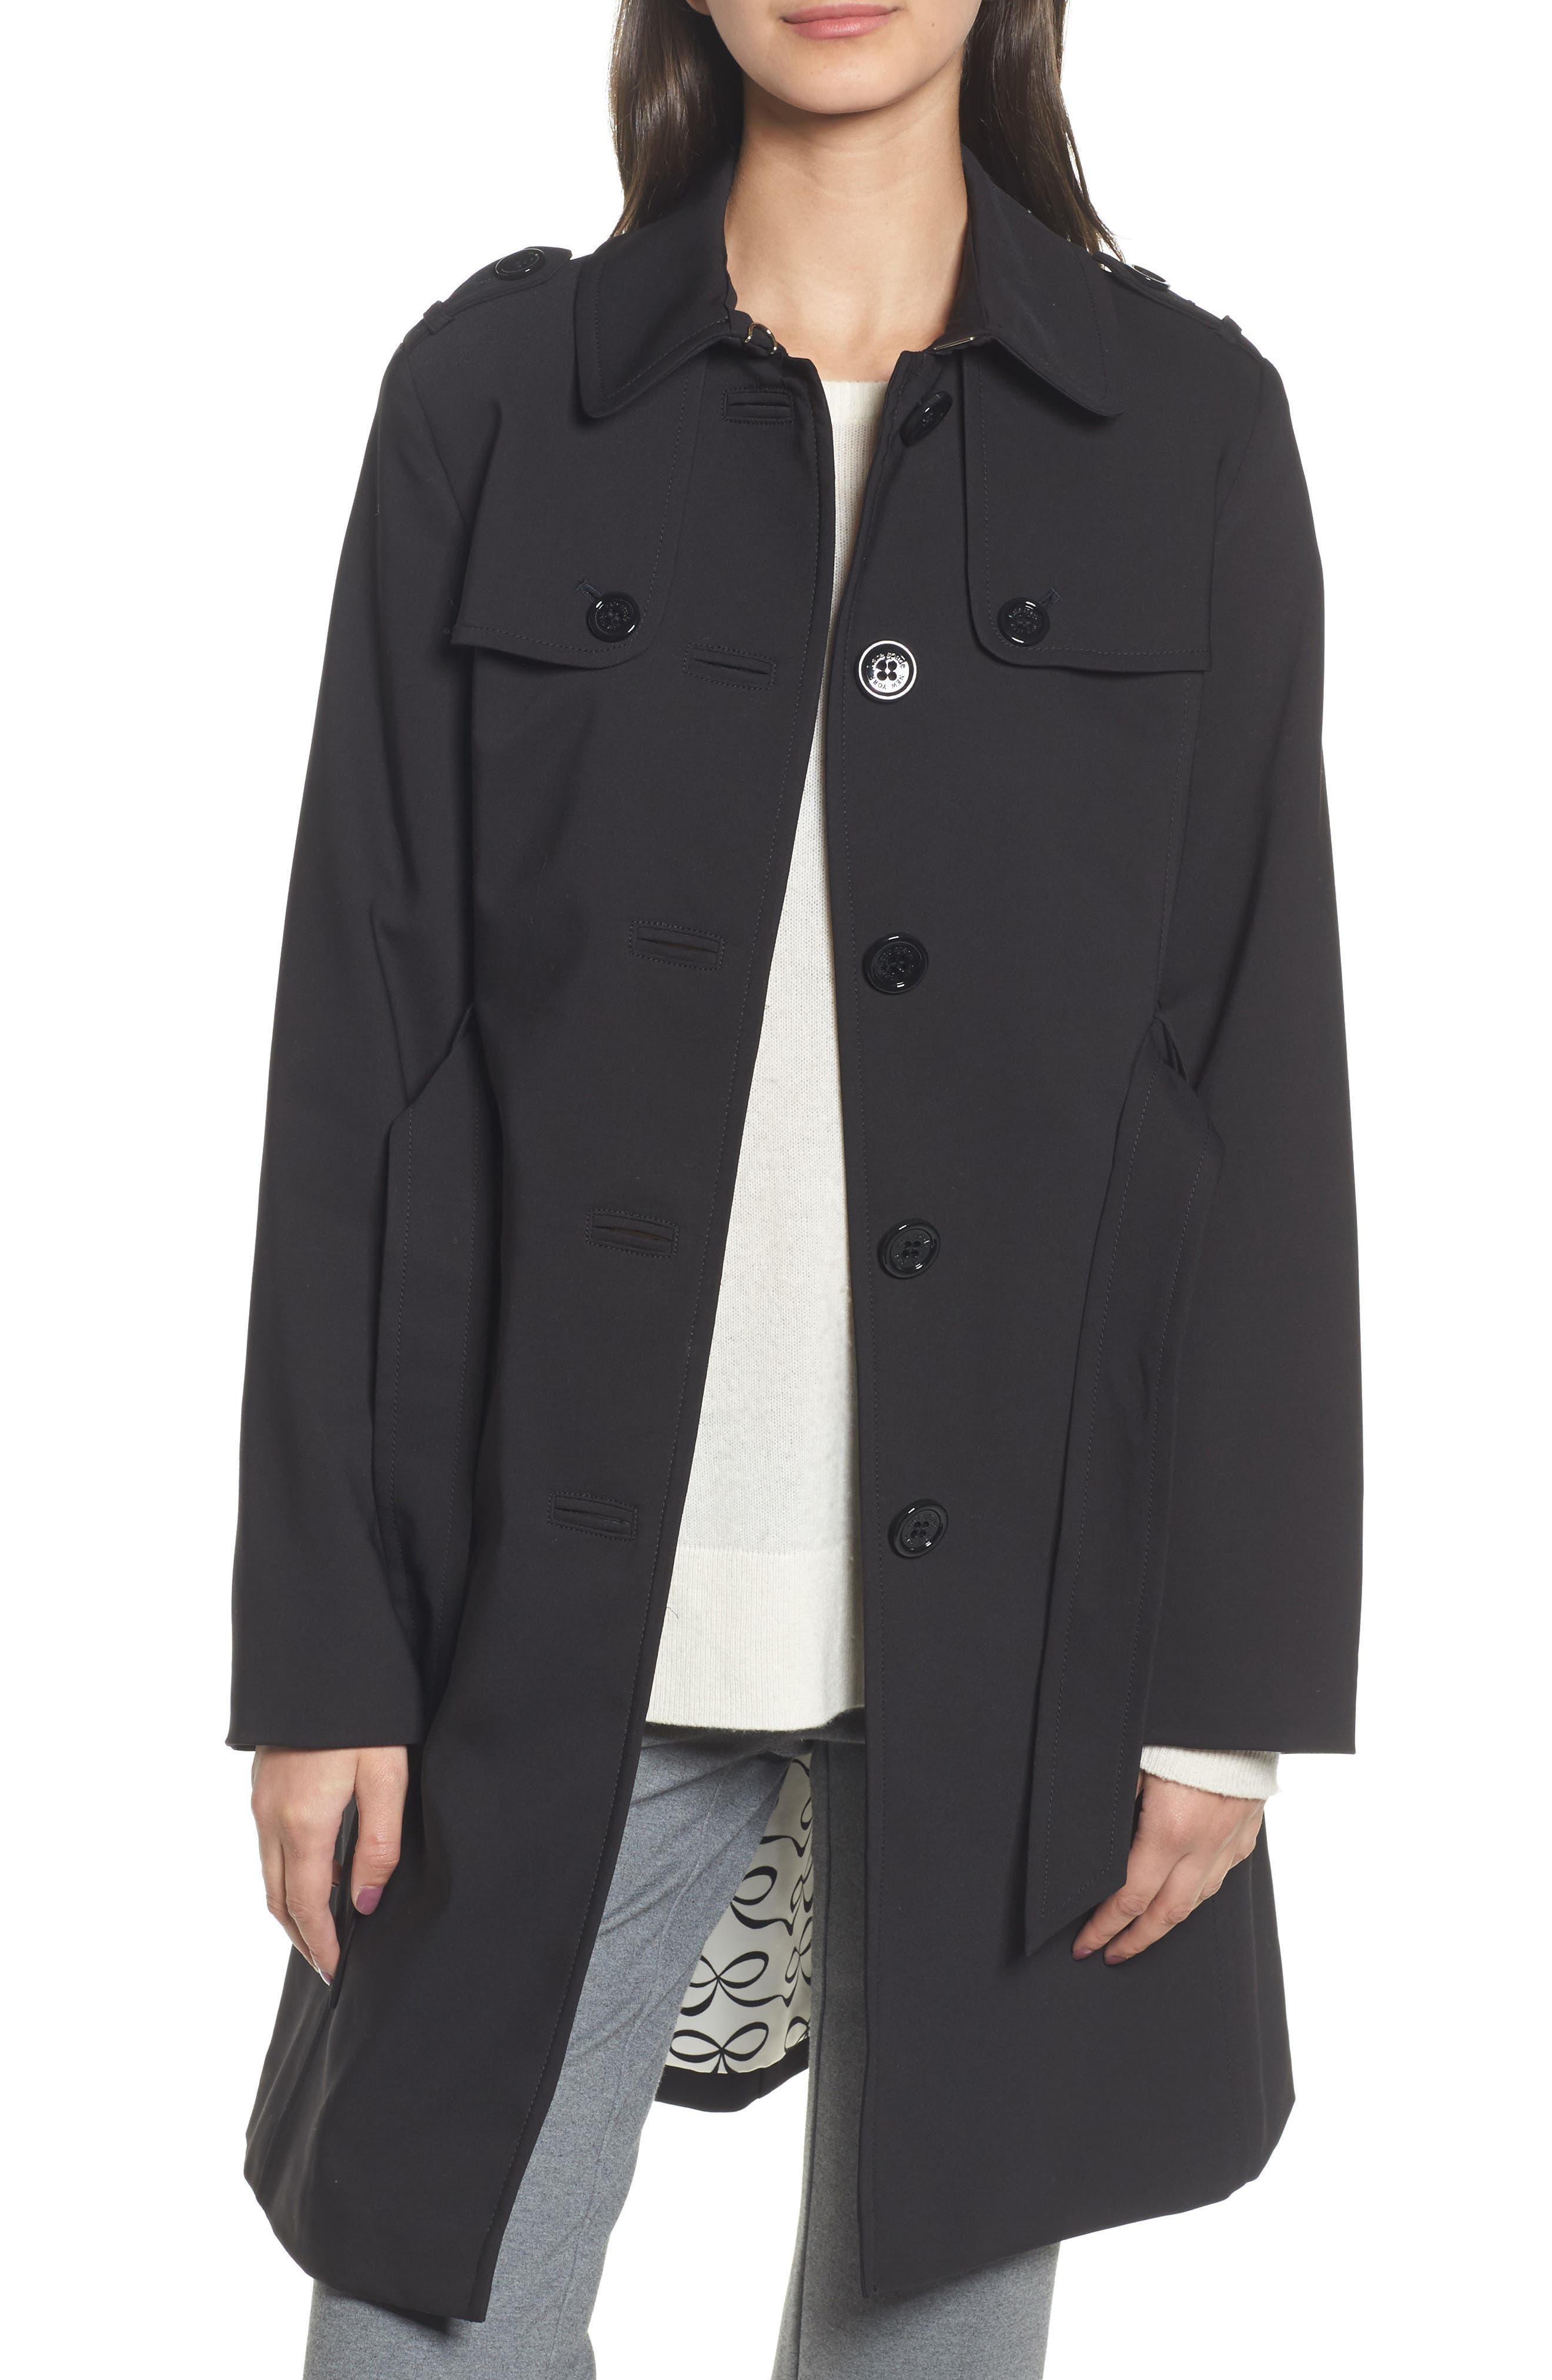 3-in-1 trench coat,                             Main thumbnail 1, color,                             001